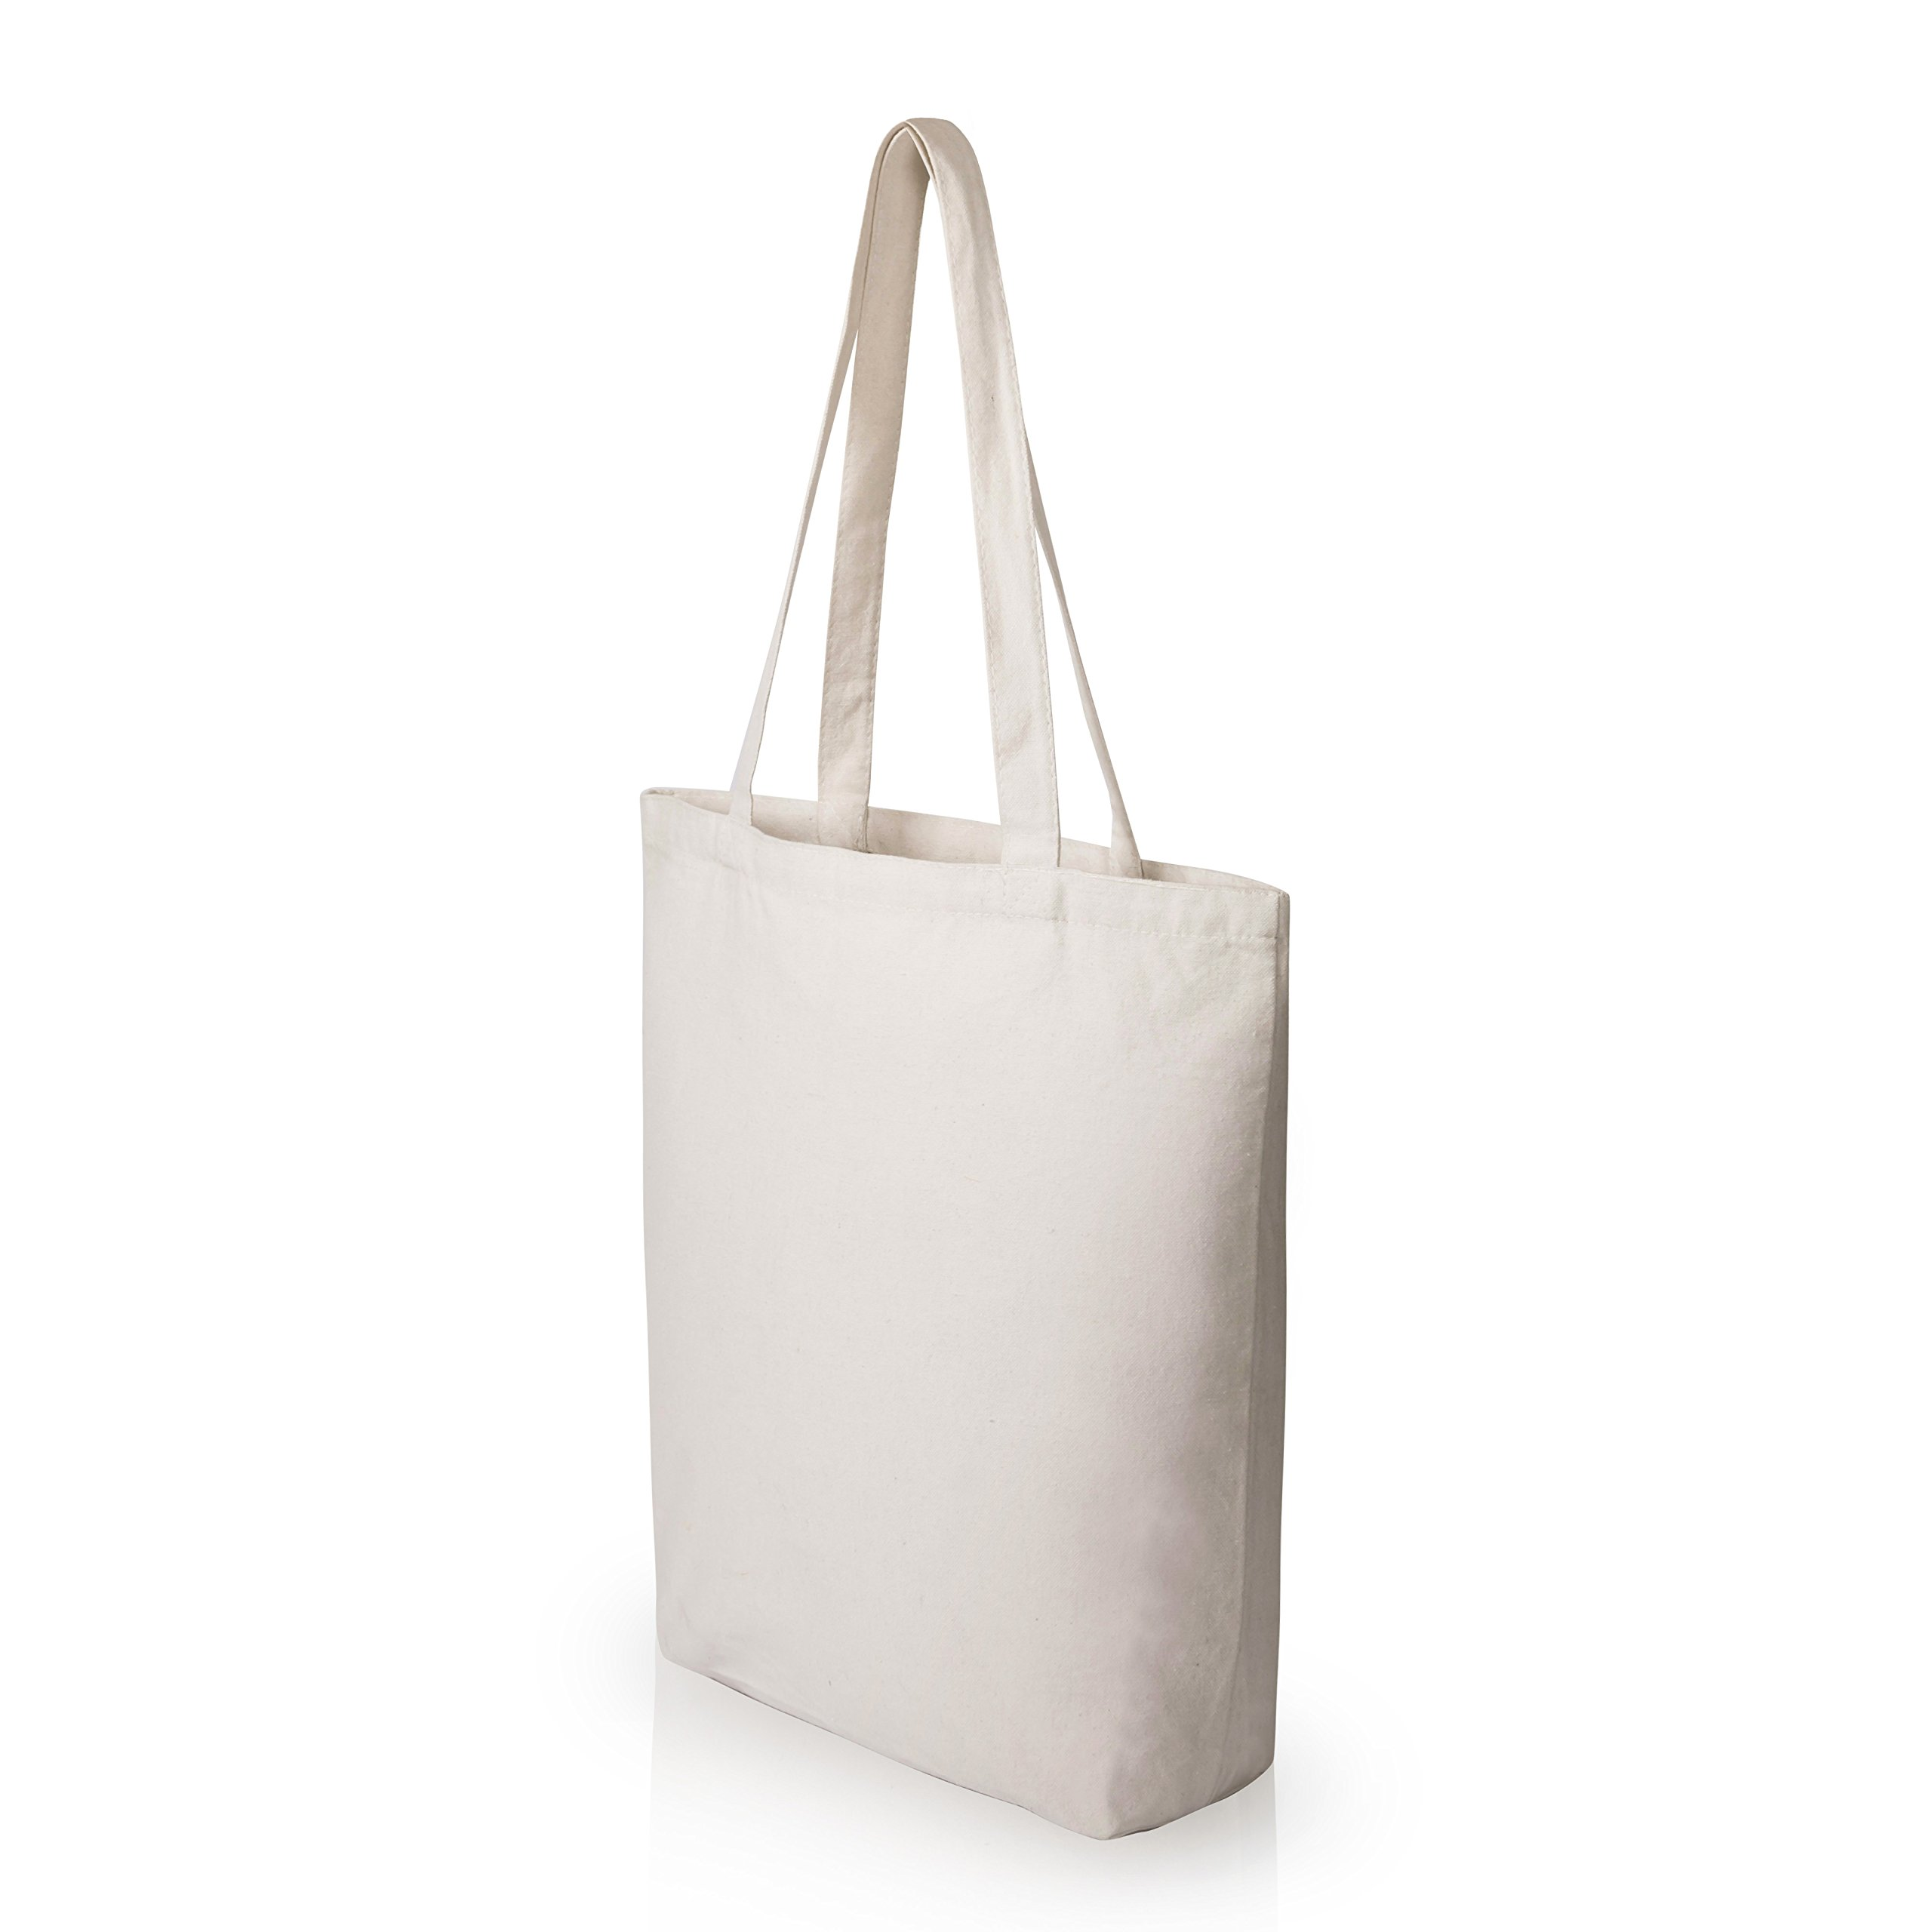 1a1d38919 Details about Heavy Duty and Strong Large Natural Canvas Tote Bags with Bottom  Gusset (25 Pack